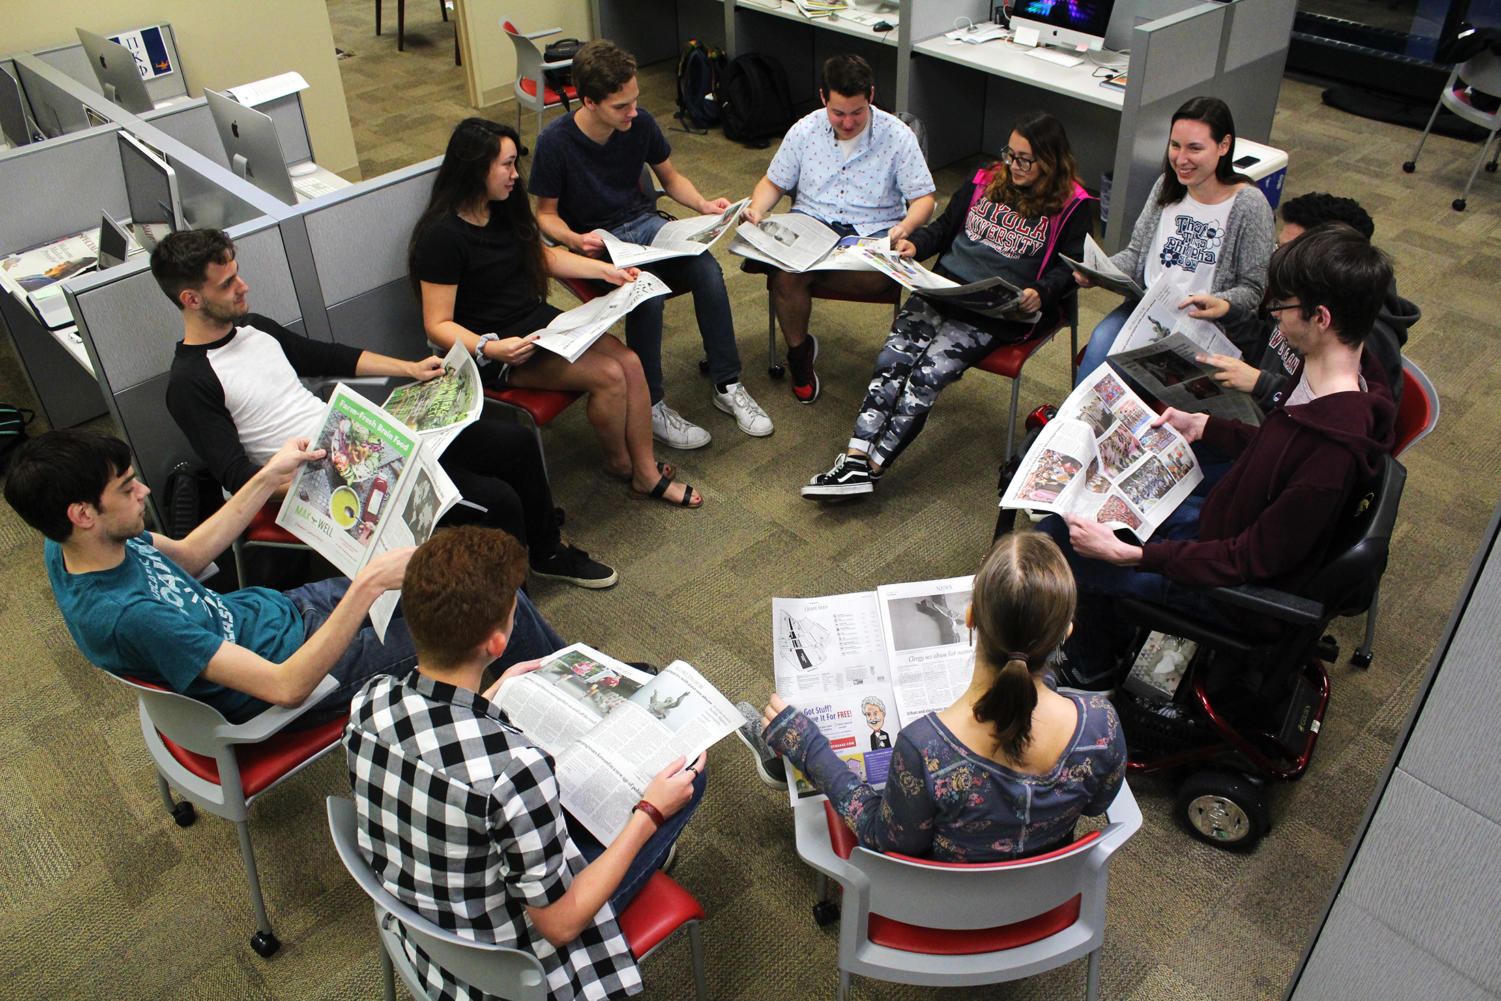 Part of The Maroon editorial board sits and discusses the latest issue of the newspaper. Photo credit: Andres Fuentes